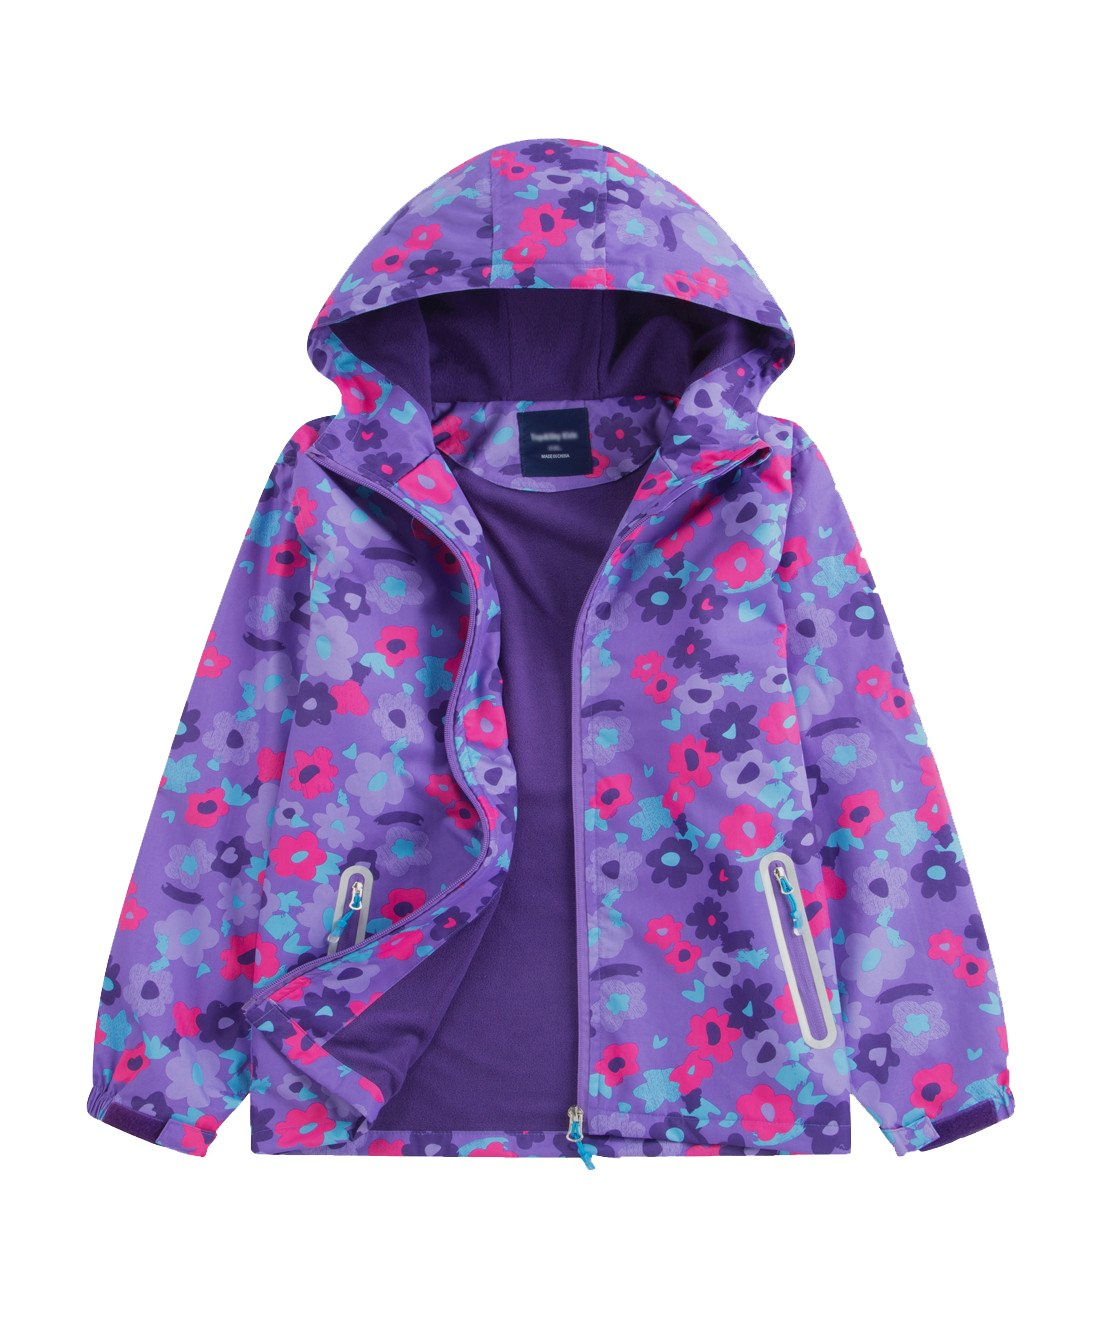 M2C Girls Outdoor Floral Fleece Lined Light Windproof Jacket with Hood 6/7 Violet